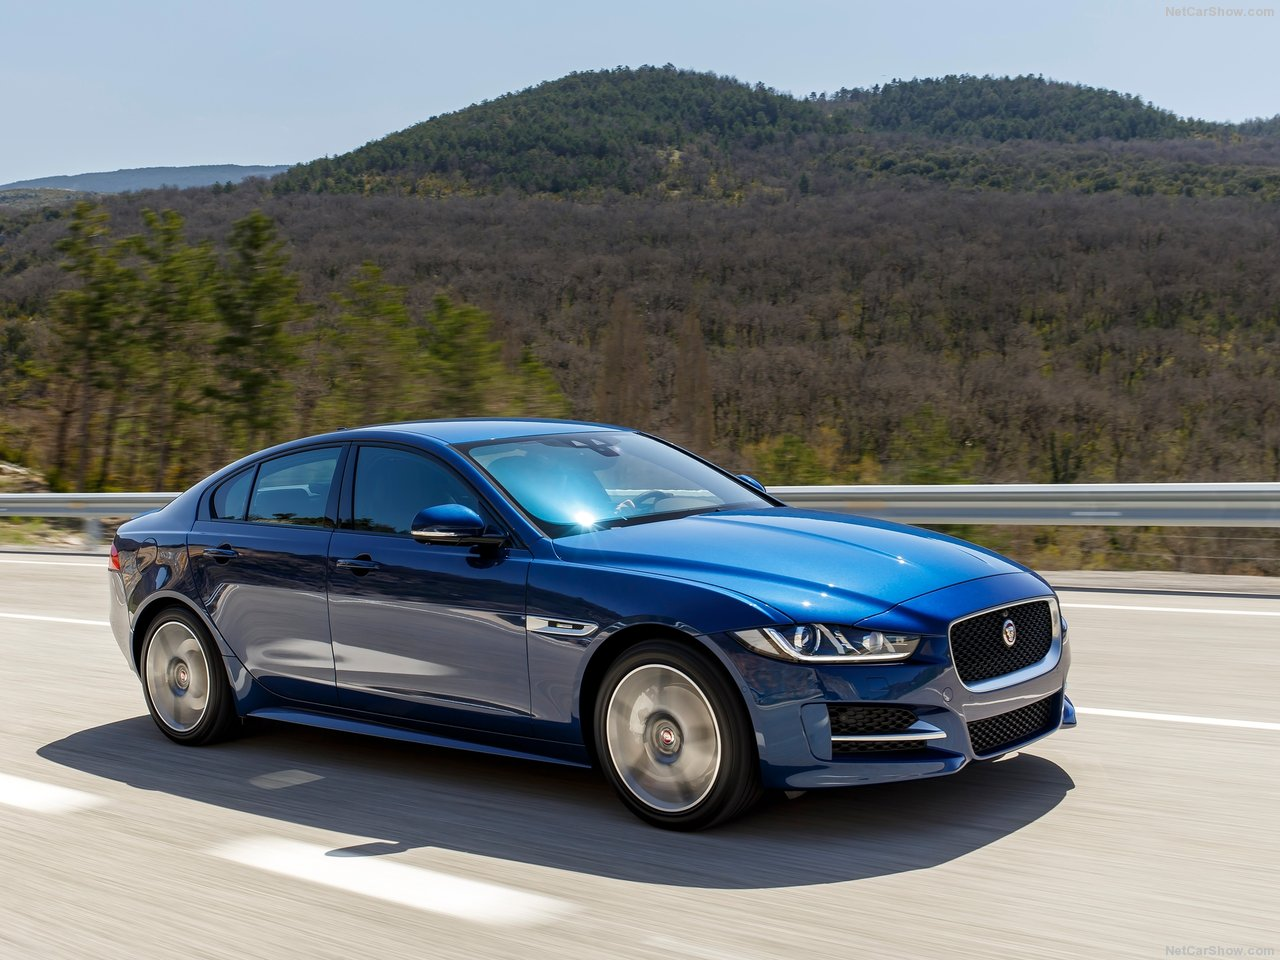 Jaguar XE photo 144696